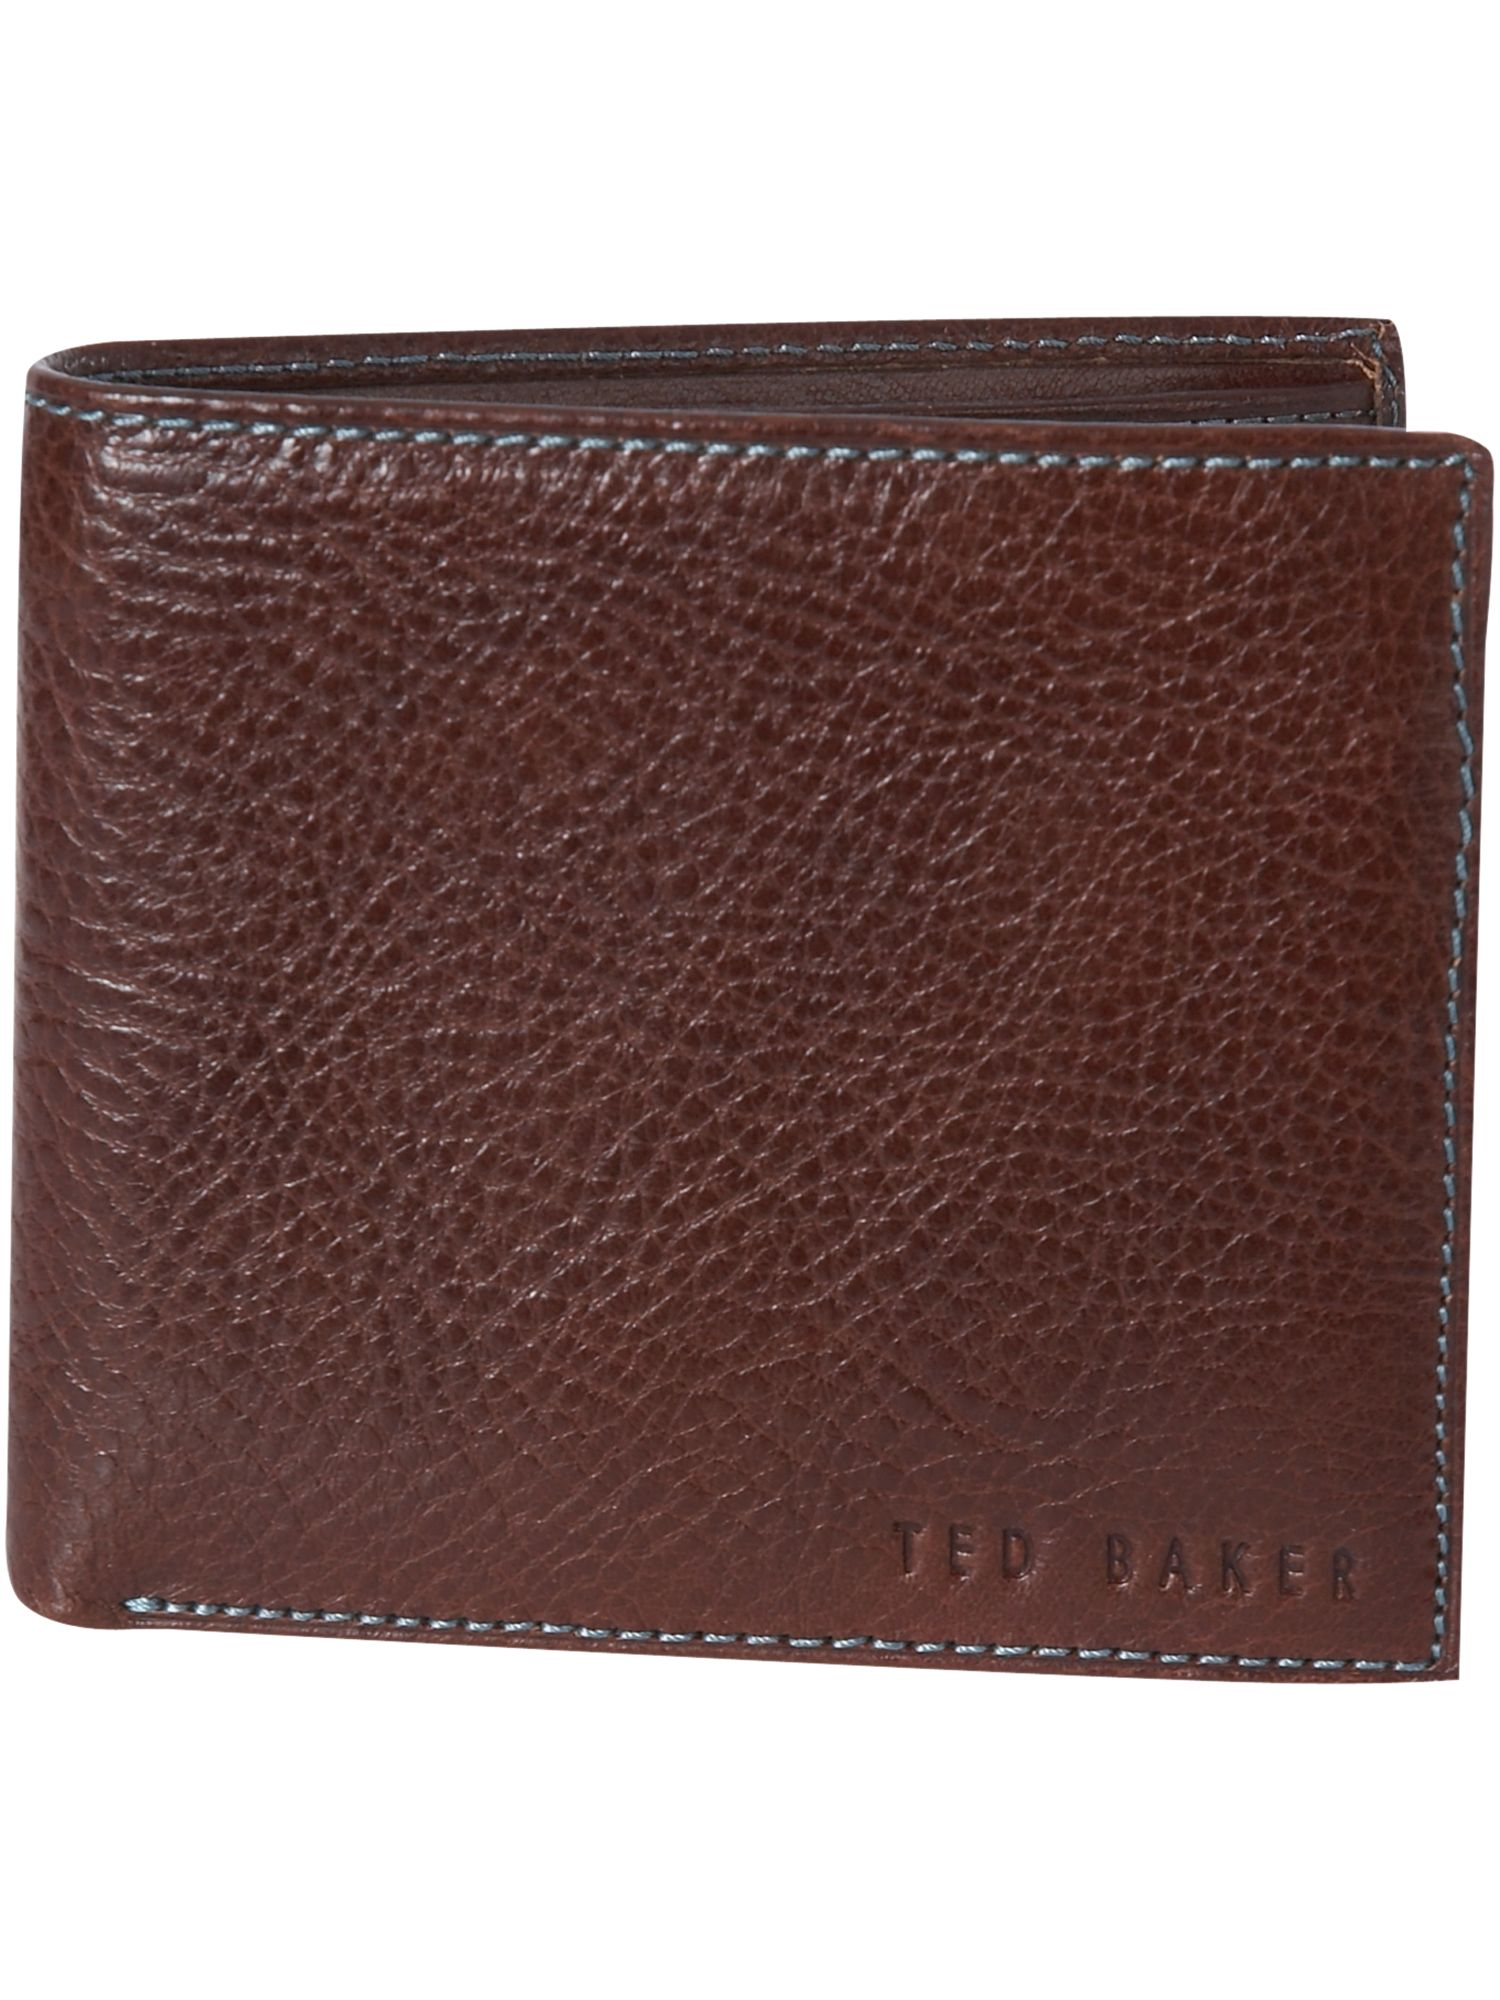 Ted Baker Contrast stitch coin pocket product image